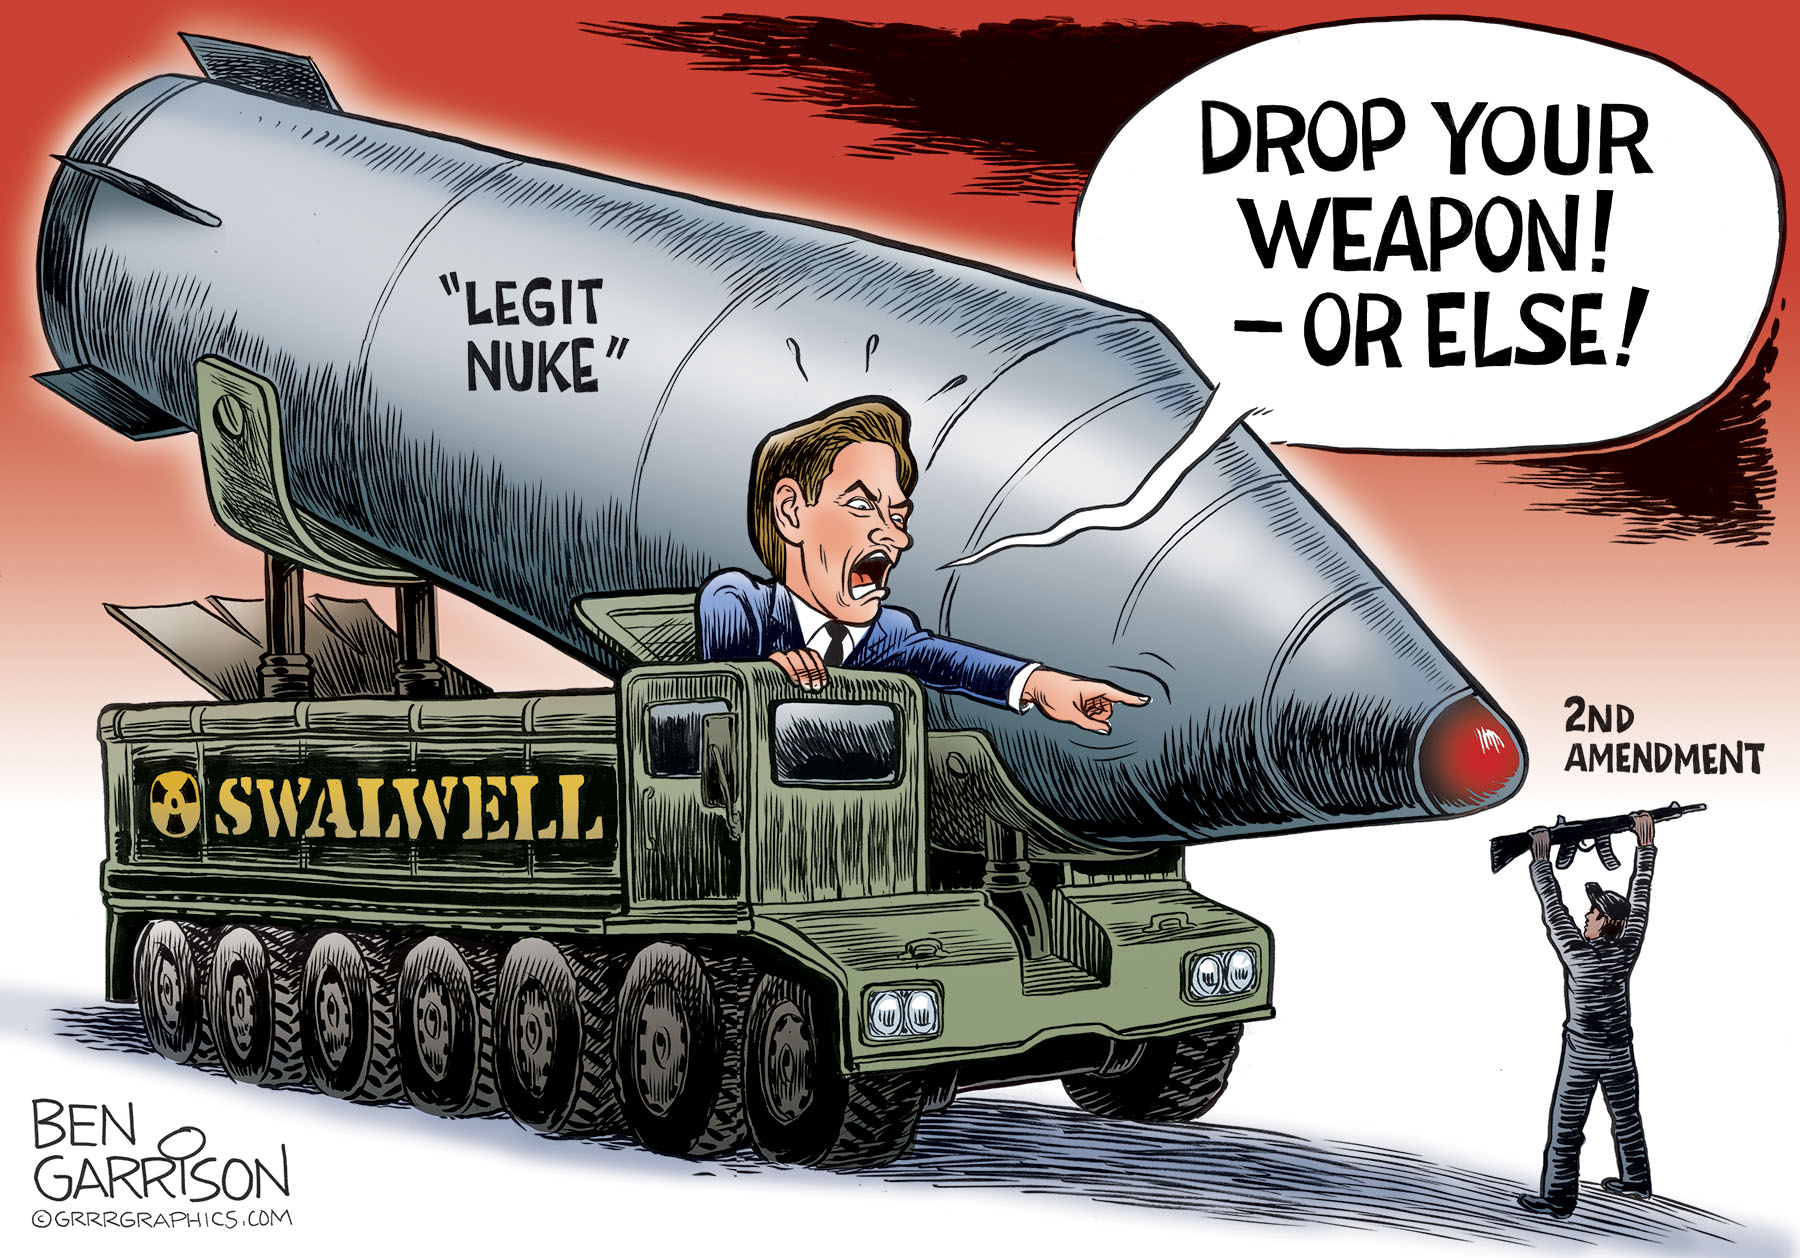 swalwell_nuke_cartoon.jpg